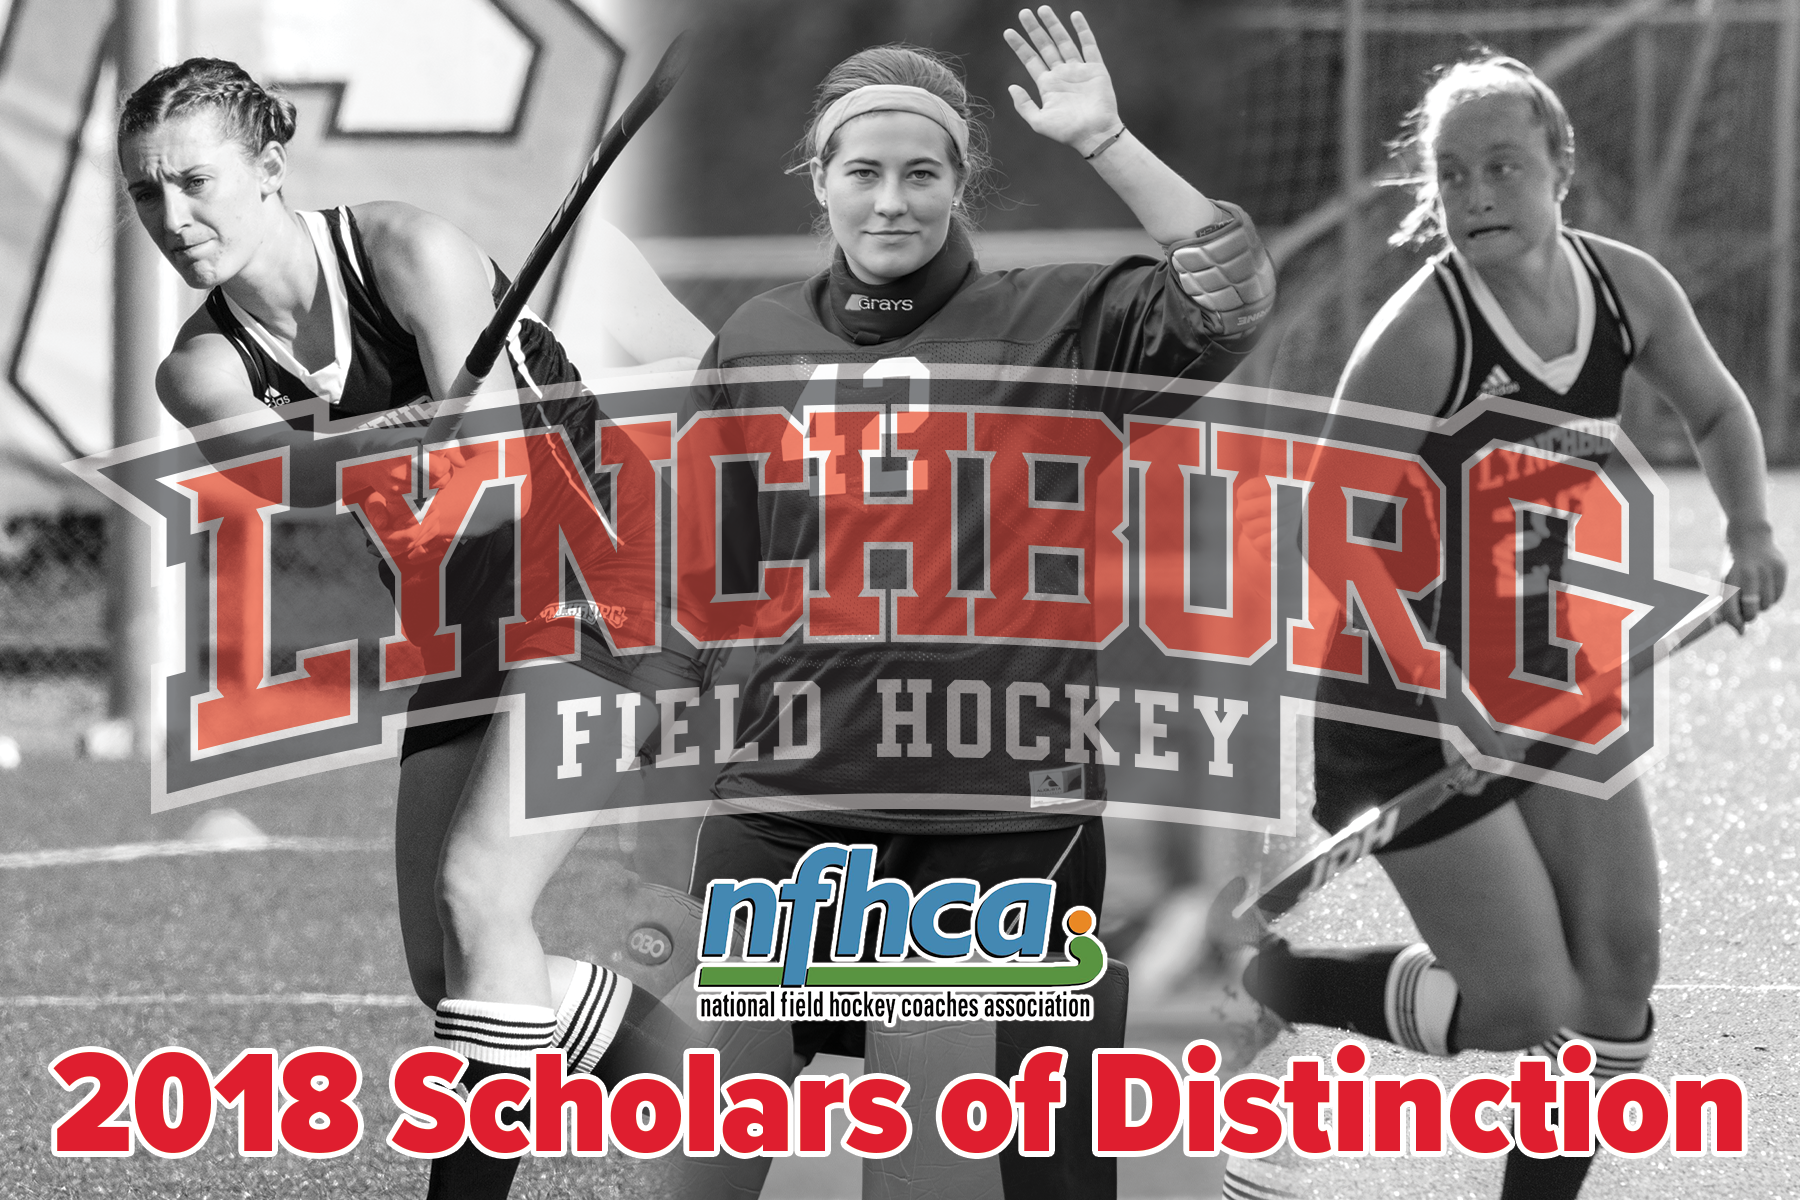 Images of field hockey players who earned national academic awards from the NFHCA with association logo and Lynchburg field hockey logo superimposed